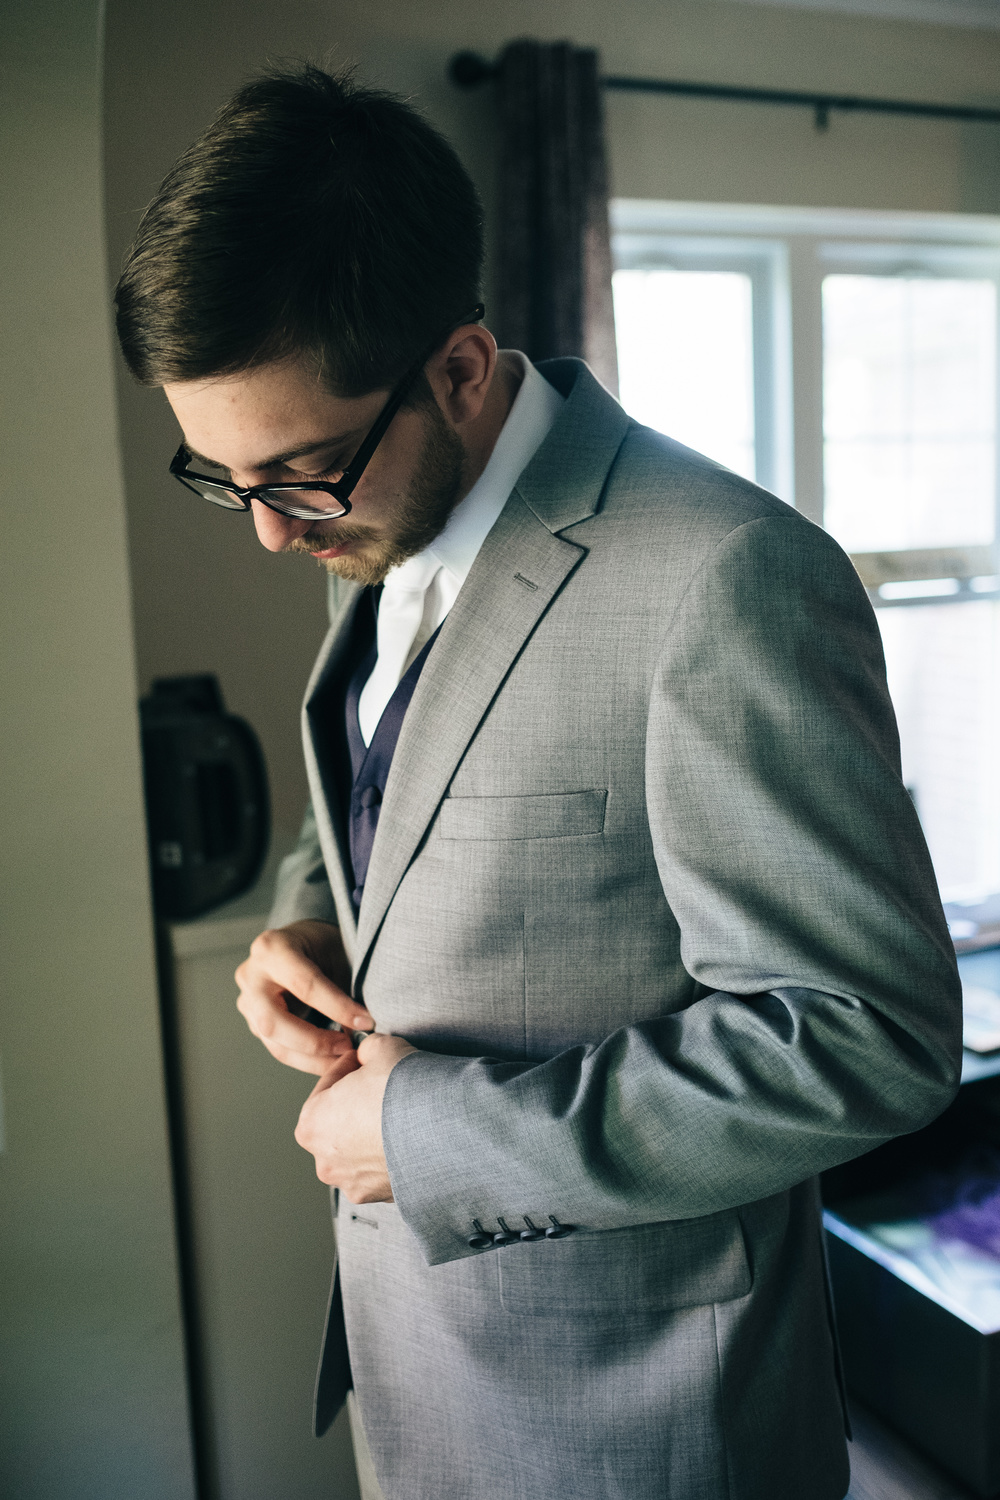 Groom getting ready for wedding in Maumee, Ohio home.